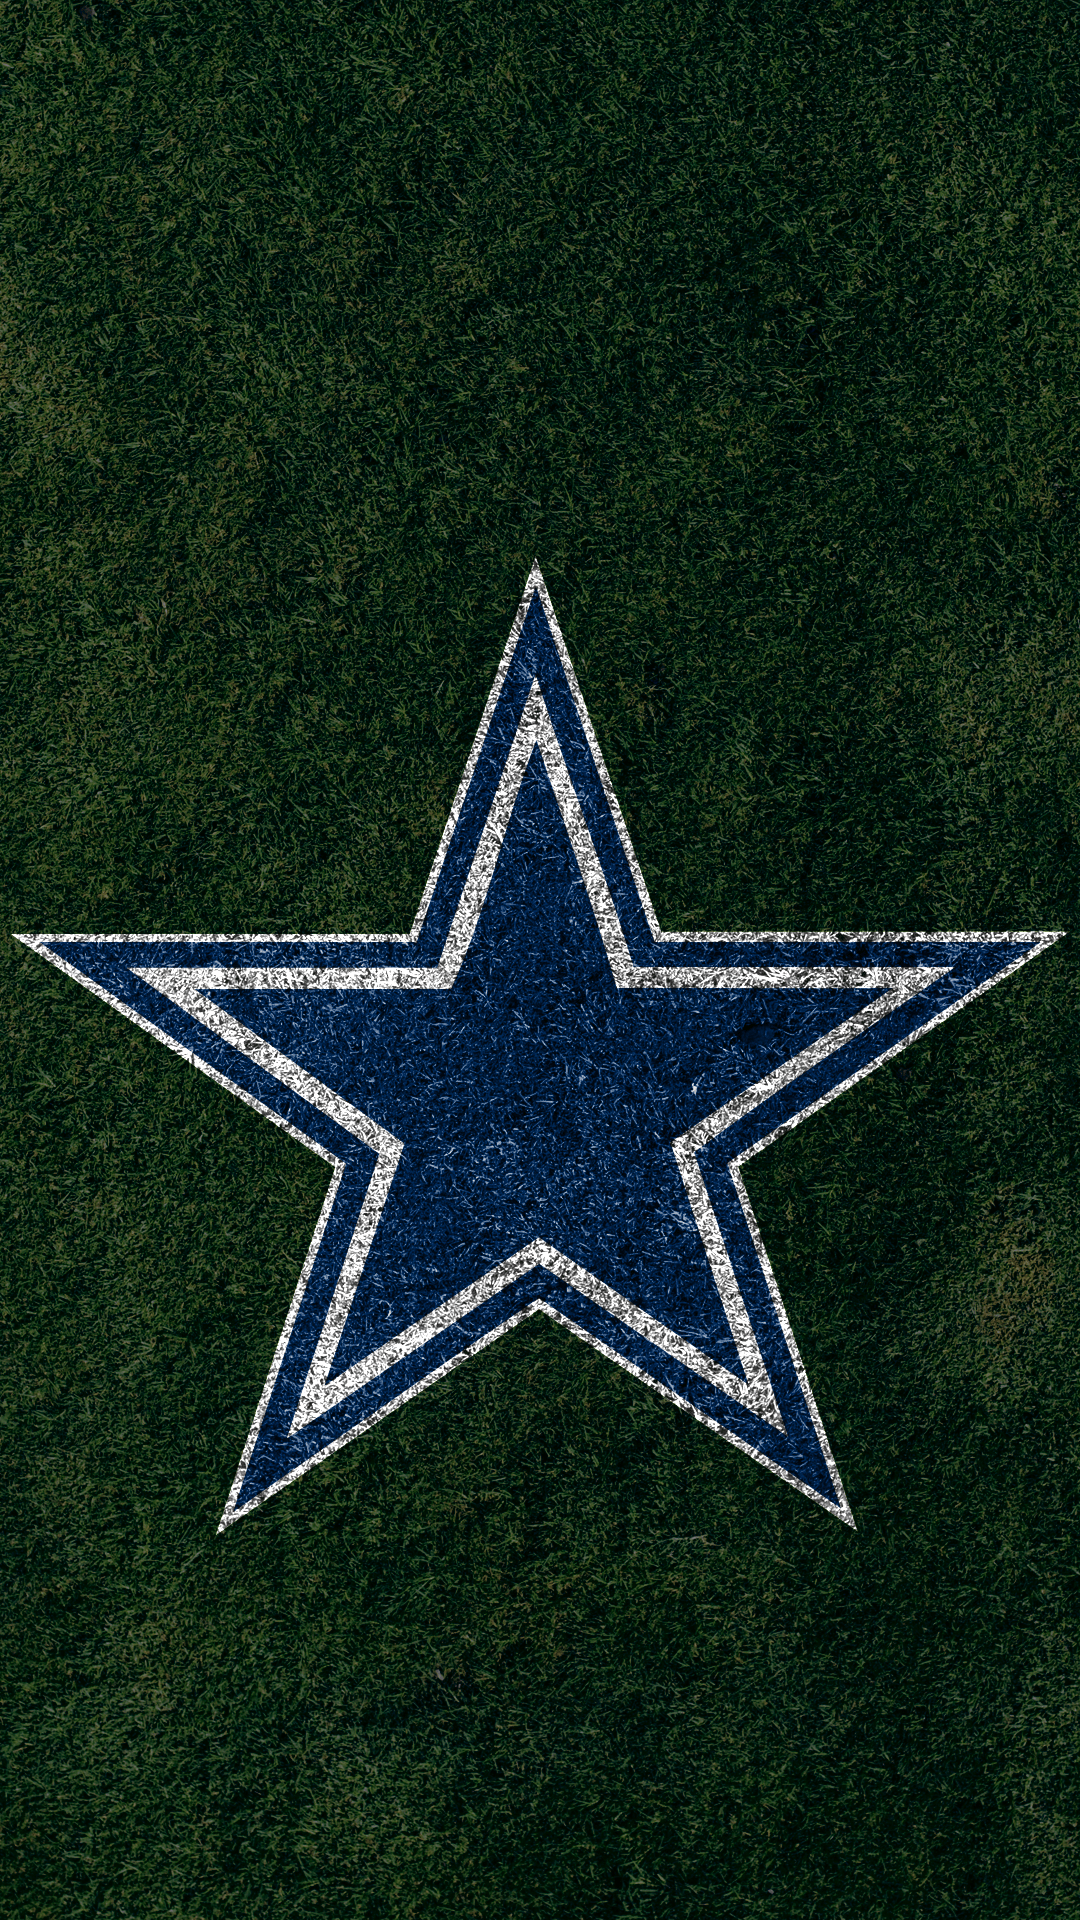 Dallas Cowboys Iphone Wallpapers Top Free Dallas Cowboys Iphone Backgrounds Wallpaperaccess